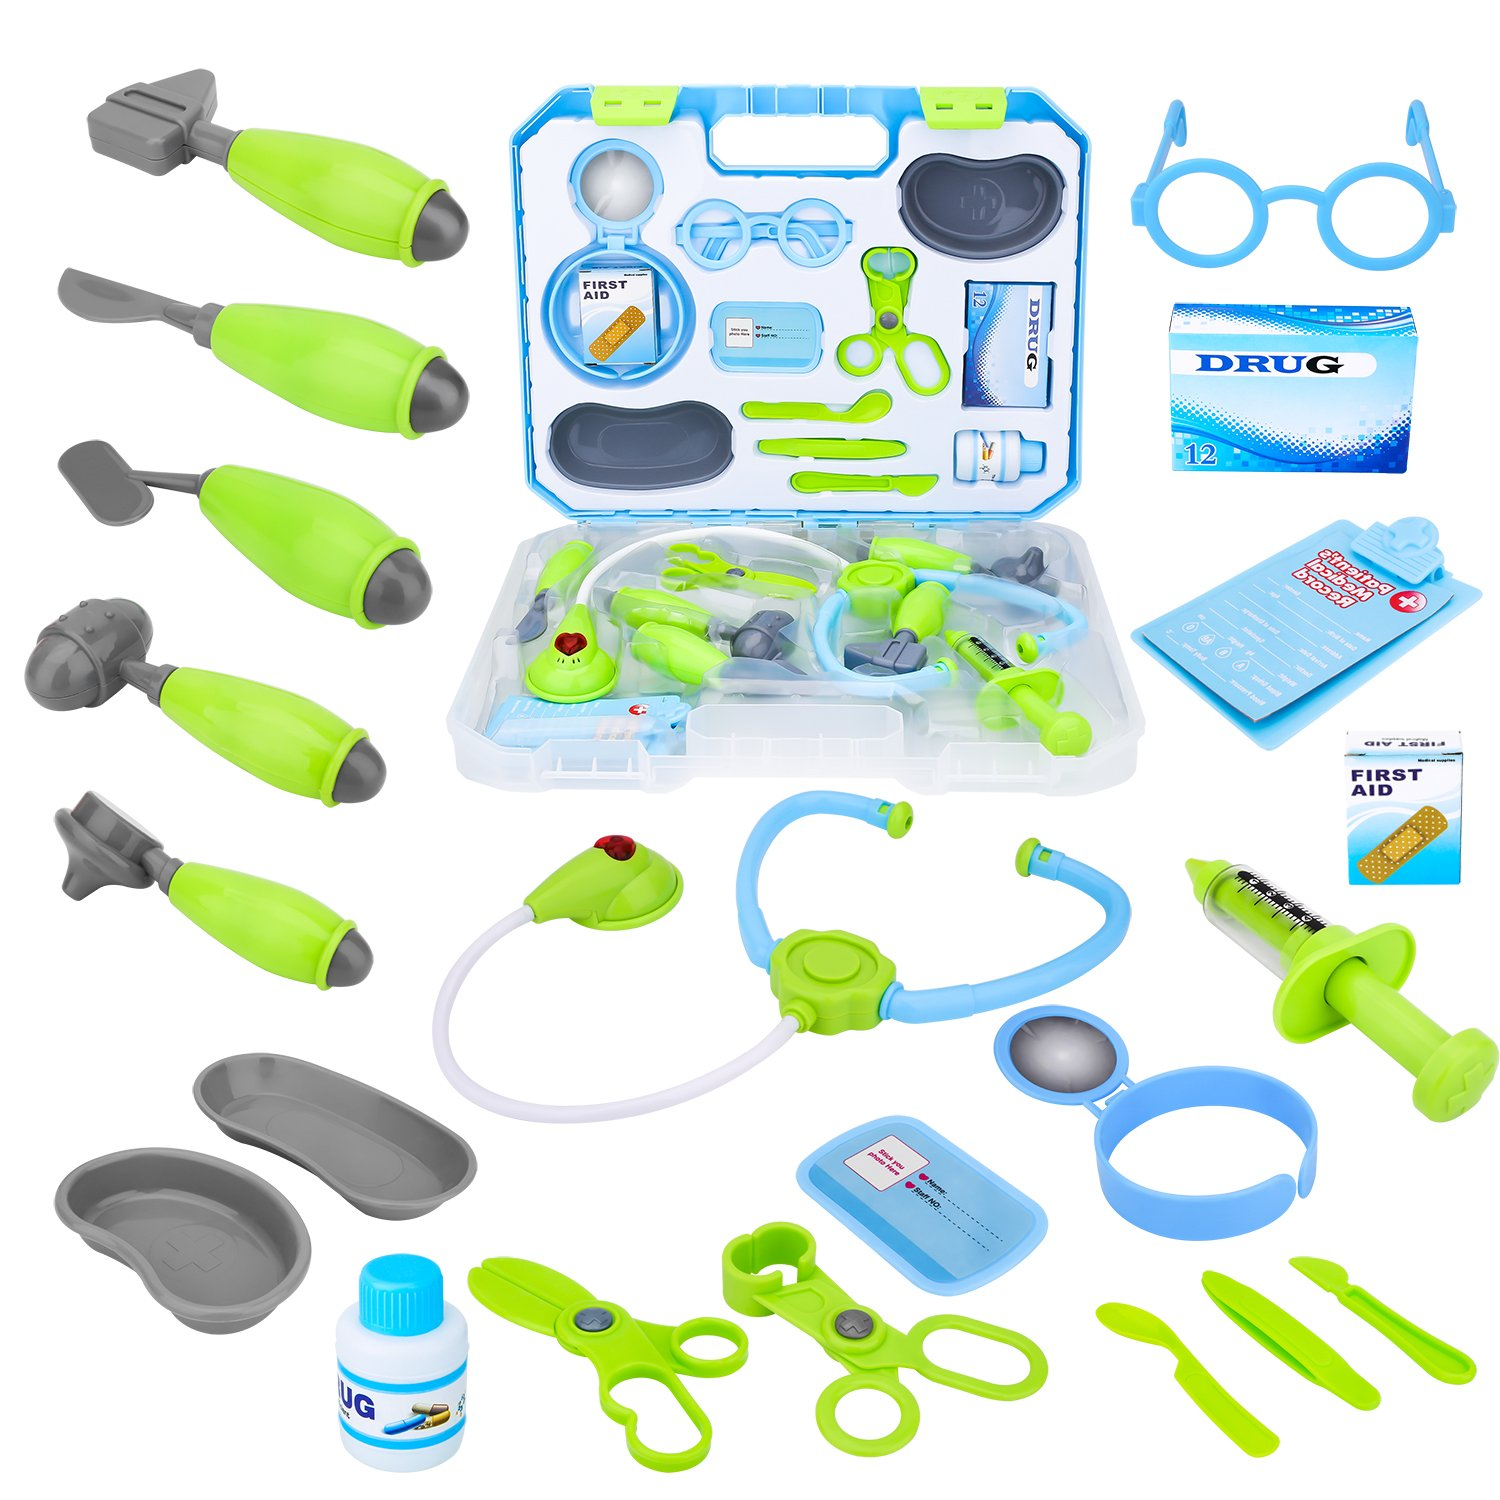 Kids Pretend Play Toy Doctor Kit, Toddler Girls Doctor Play Toy Medical Set in Sturdy Case, Toy Medical kit for Boys